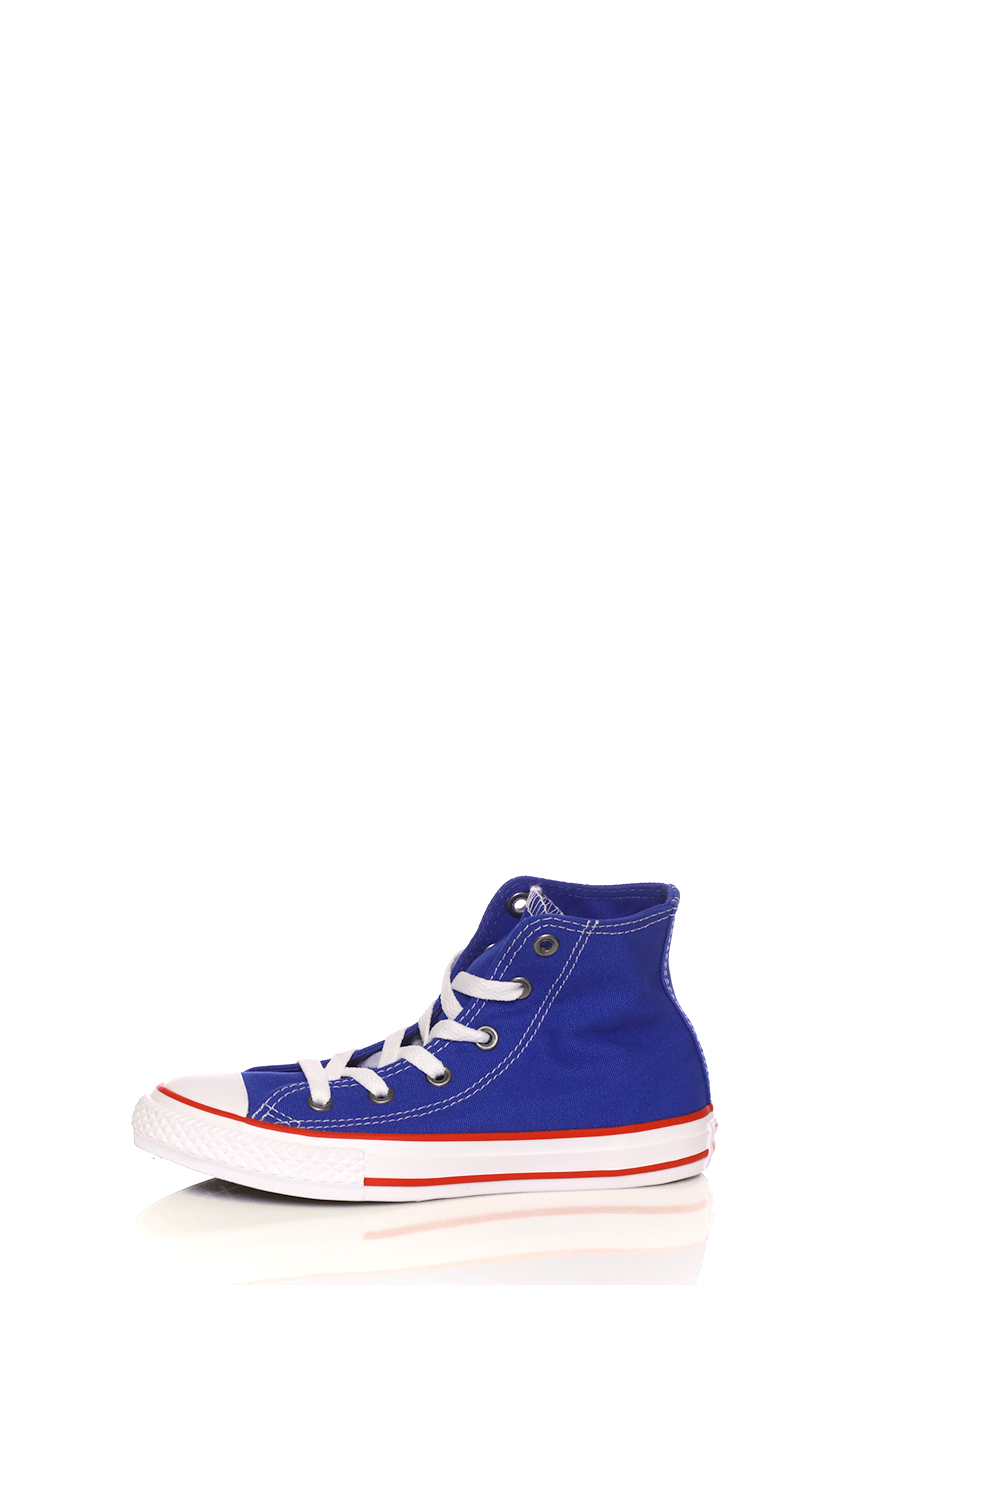 CONVERSE - Παιδικά Μποτάκια Converse CHUCK TAYLOR ALL STAR Μπλε